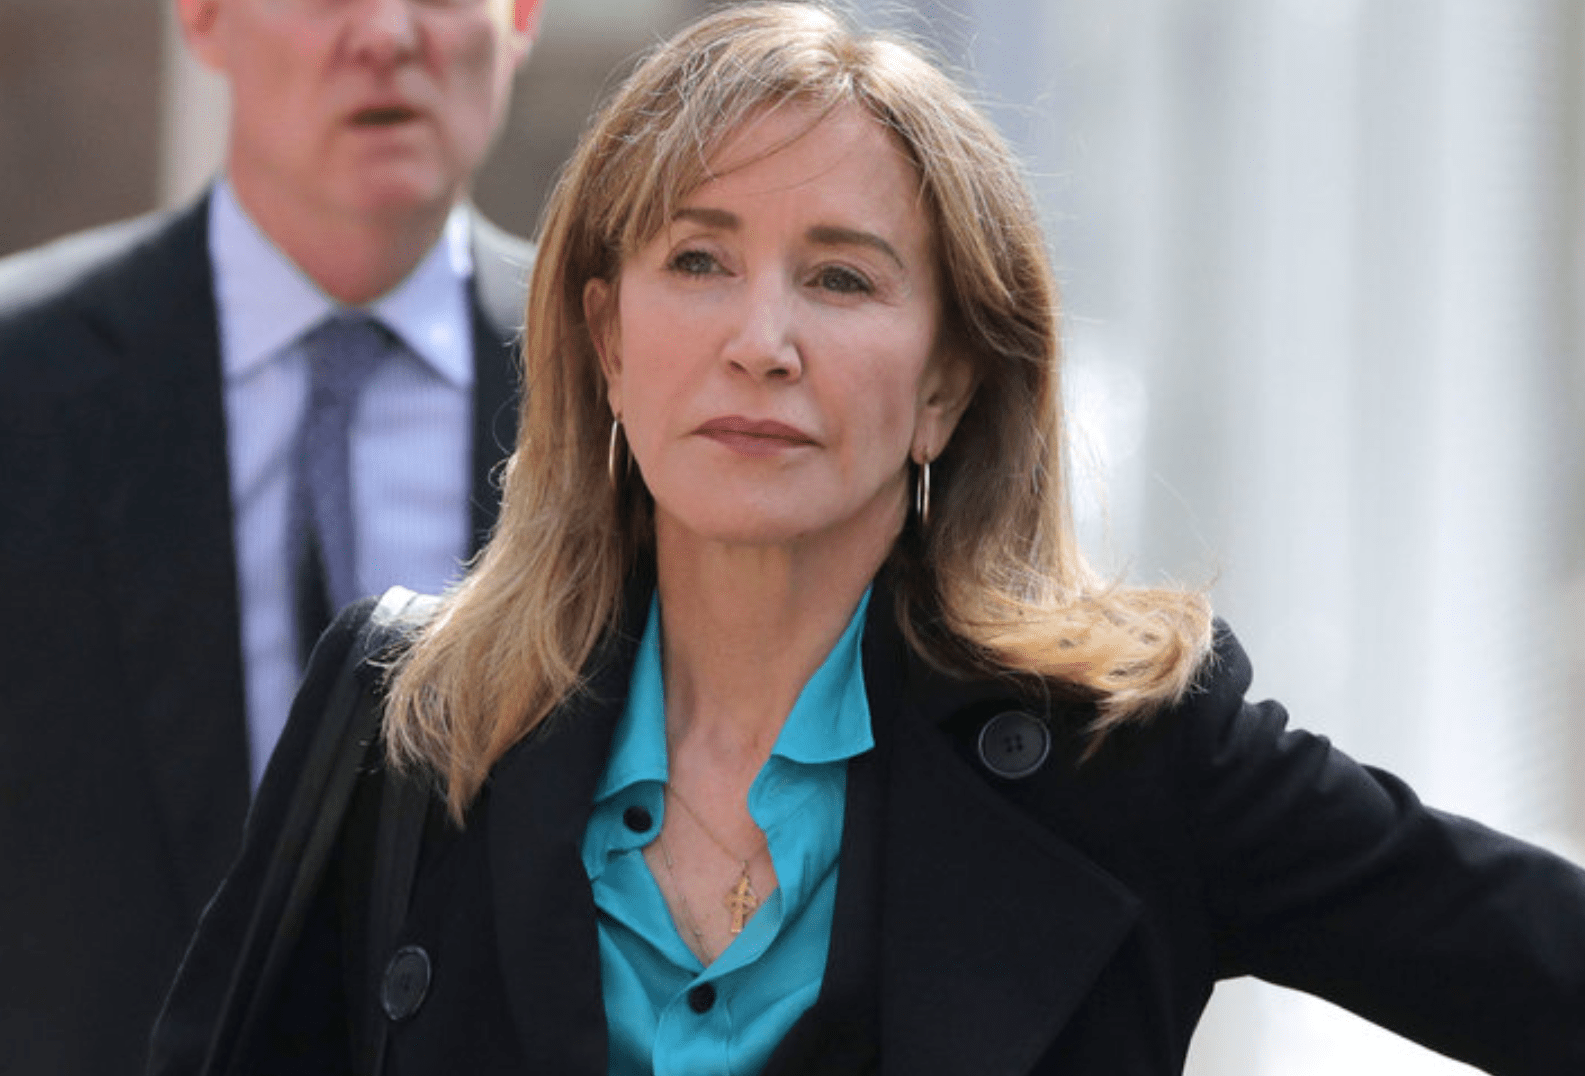 Felicity Huffman To Be Sentenced Friday In College Admissions Scandal; Prosecutors Plan To Seek Up To 10 Months Jail Time